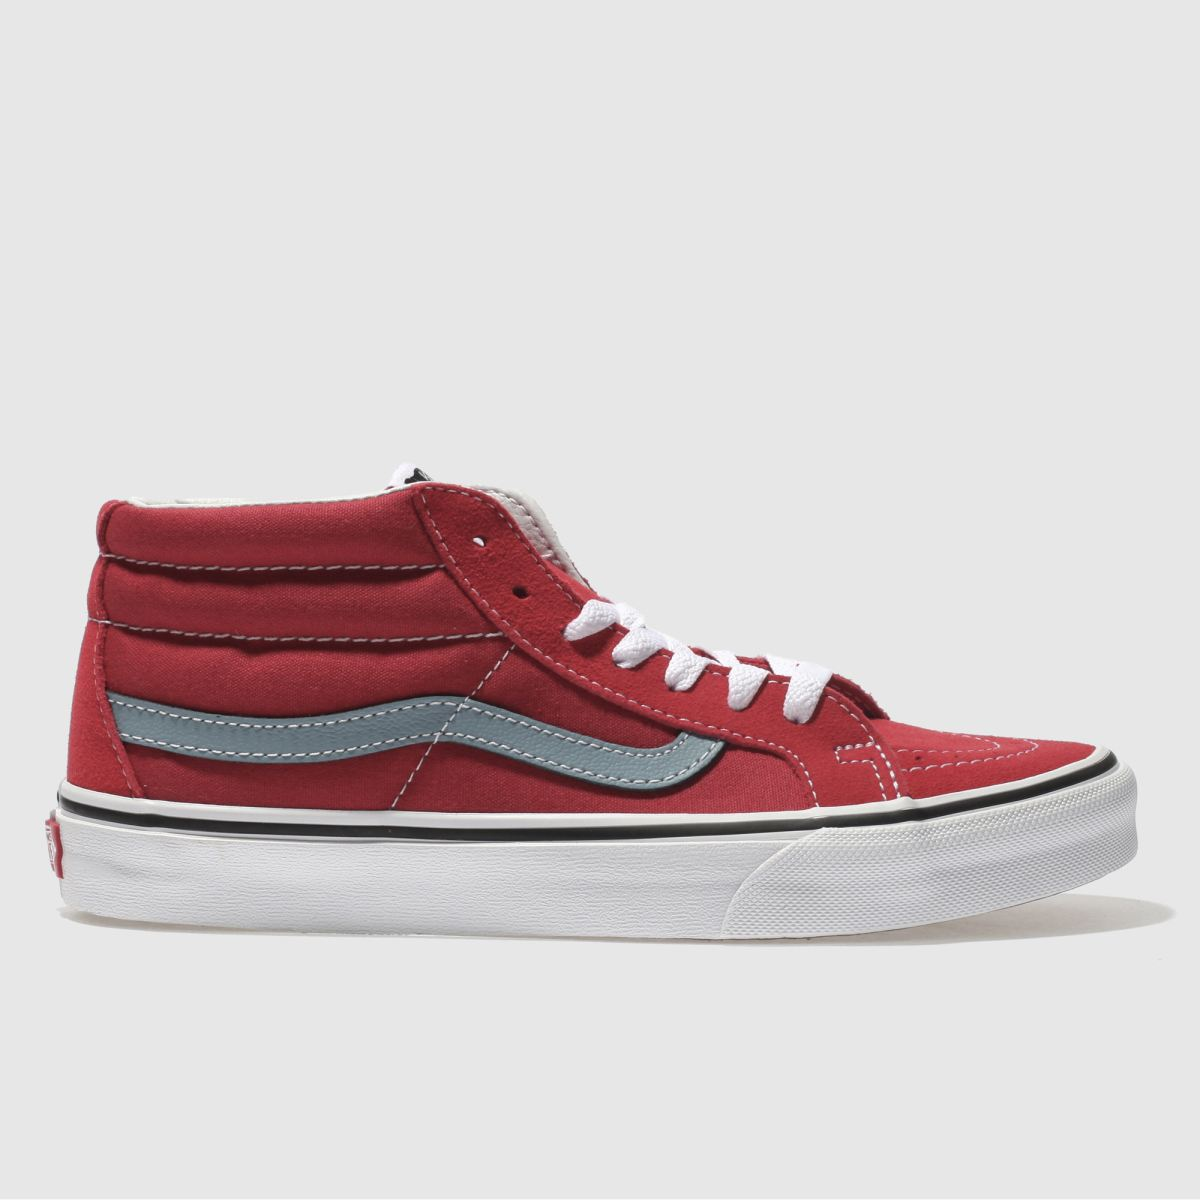 Vans Red Sk8-mid Reissue Trainers